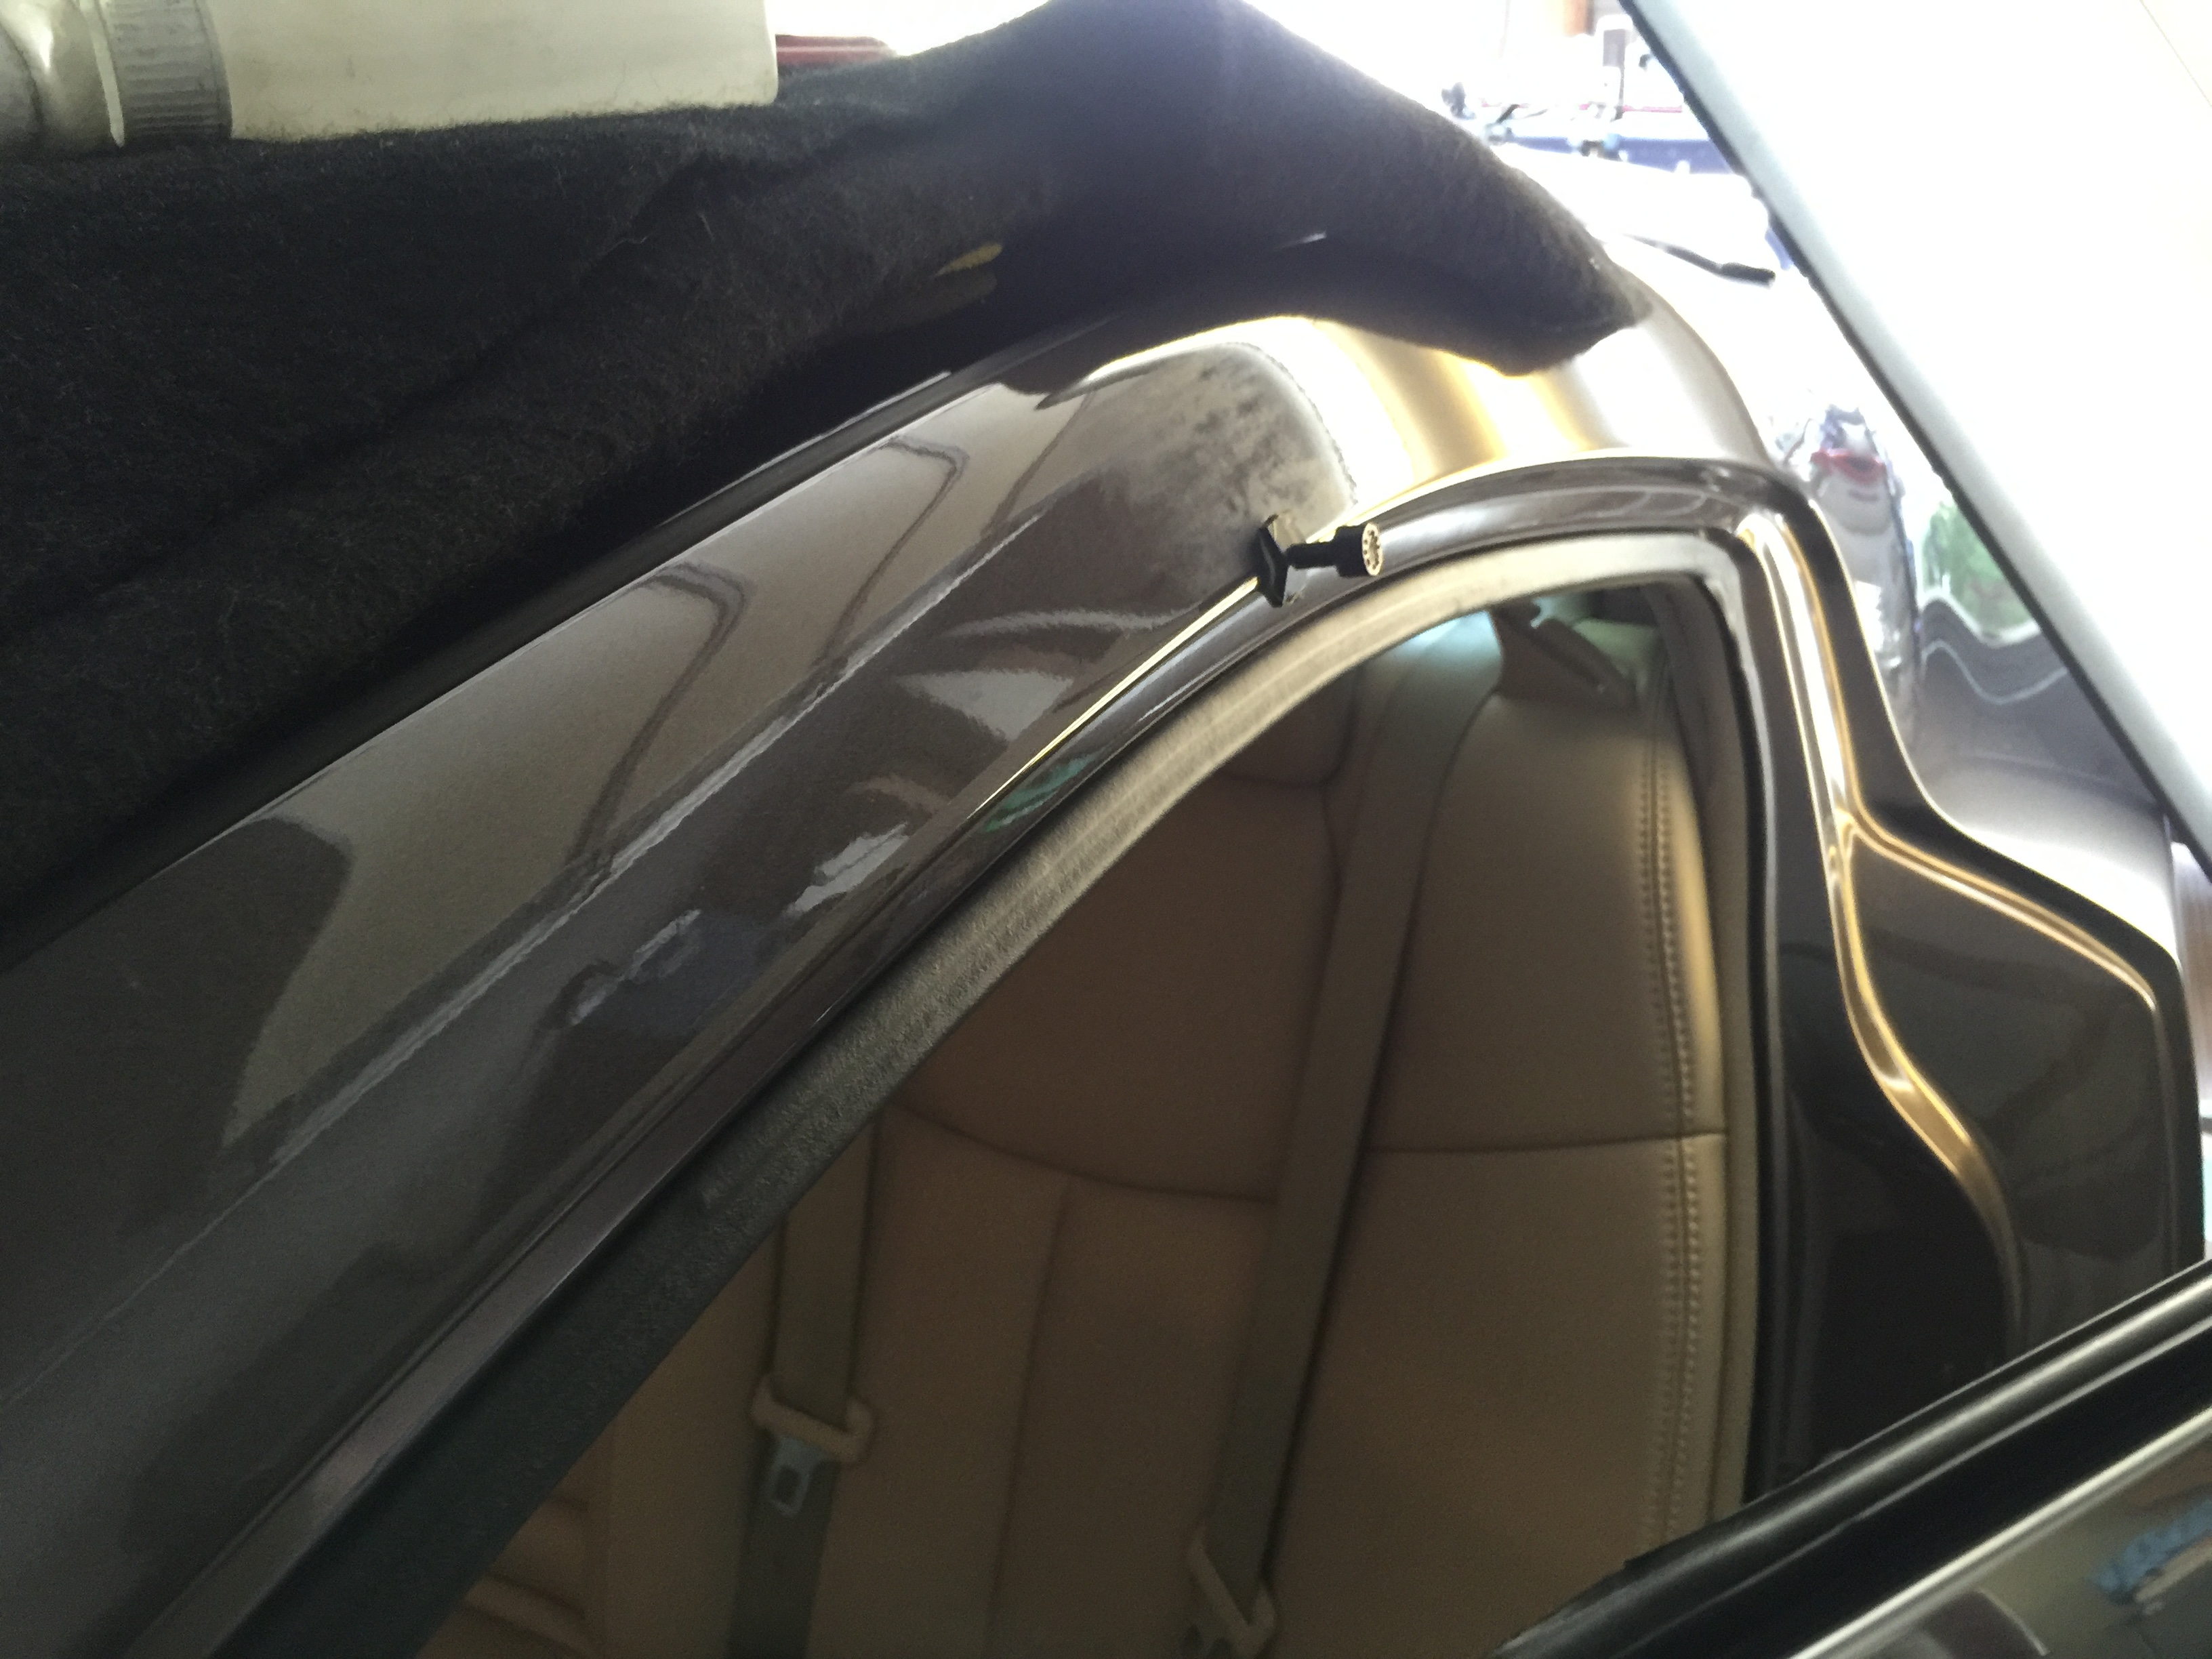 2013 Nissan Maxima Roof Rail Cressed Dent, Removed with the paintless dent removal process, and was removed by Michael Bocek out of Springfield, IL http://217dent.com